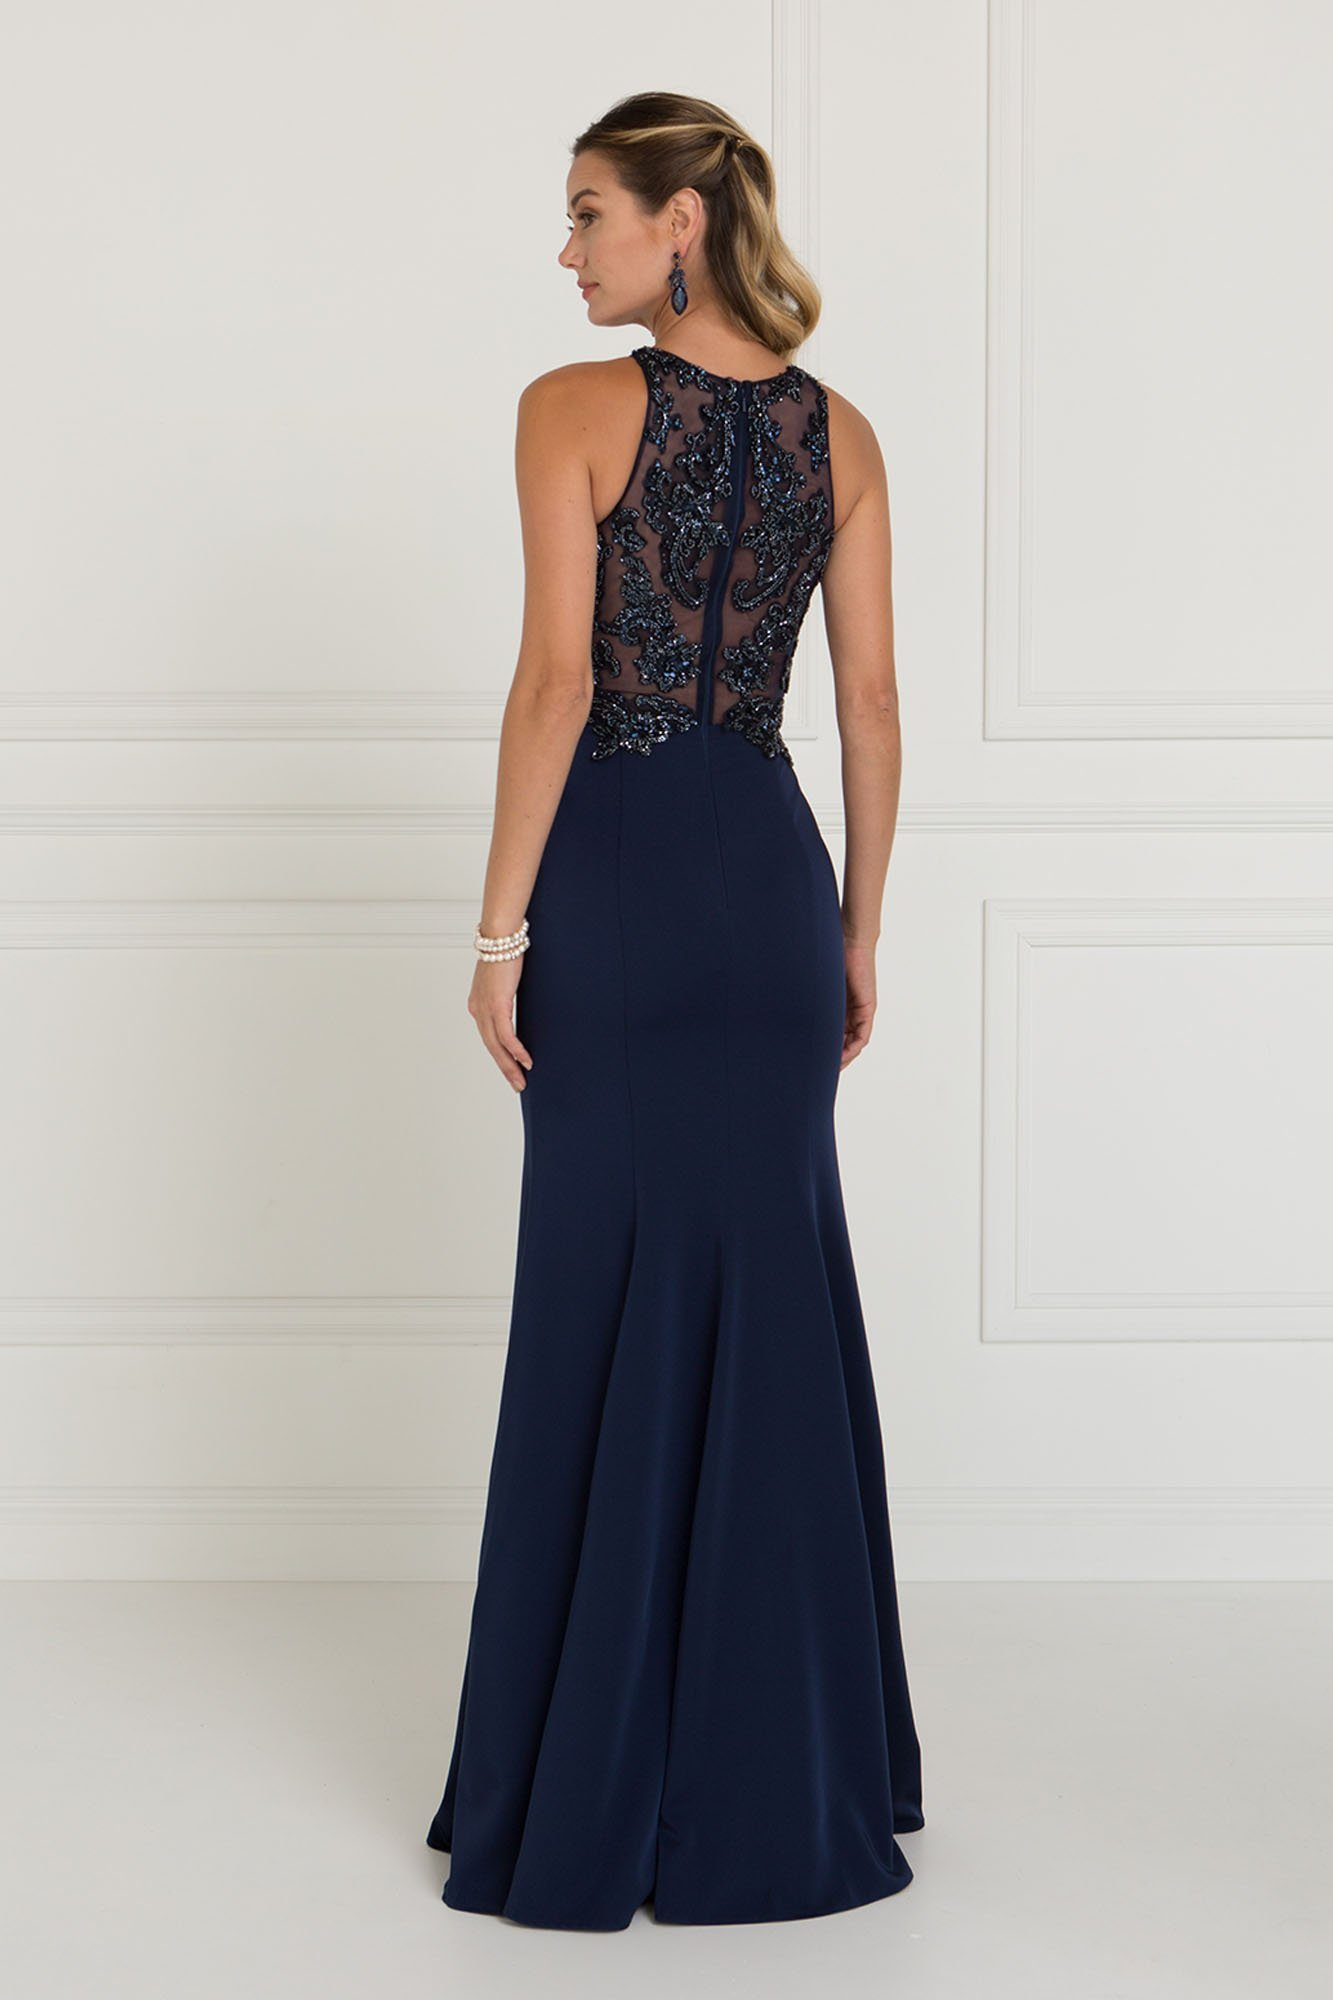 High Neck fitted prom dress GLS 1568-Simply Fab Dress